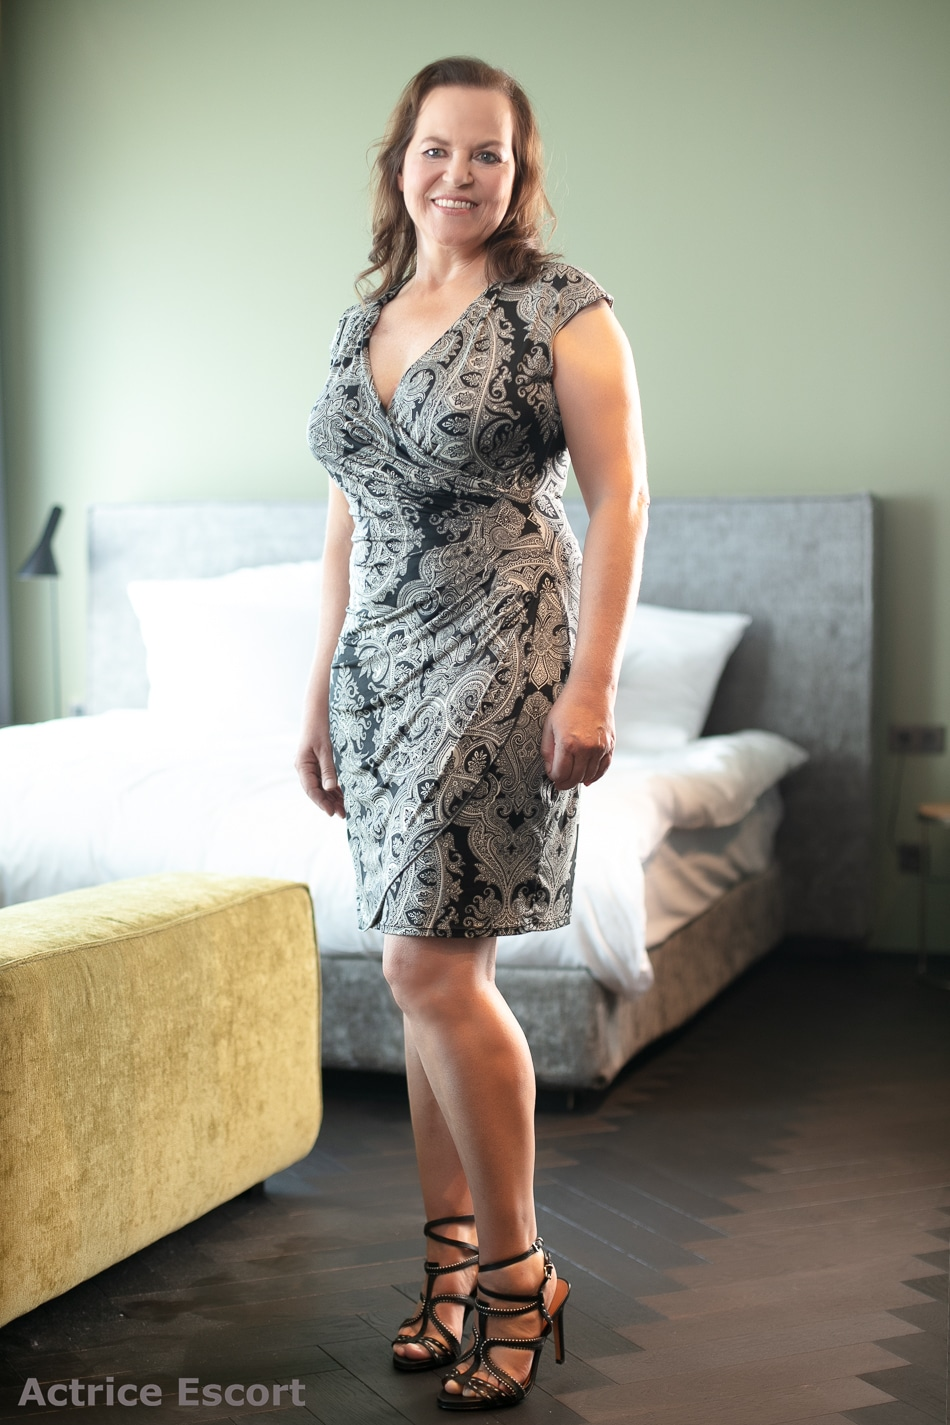 Bettina Escortservice Duesseldorf(9)